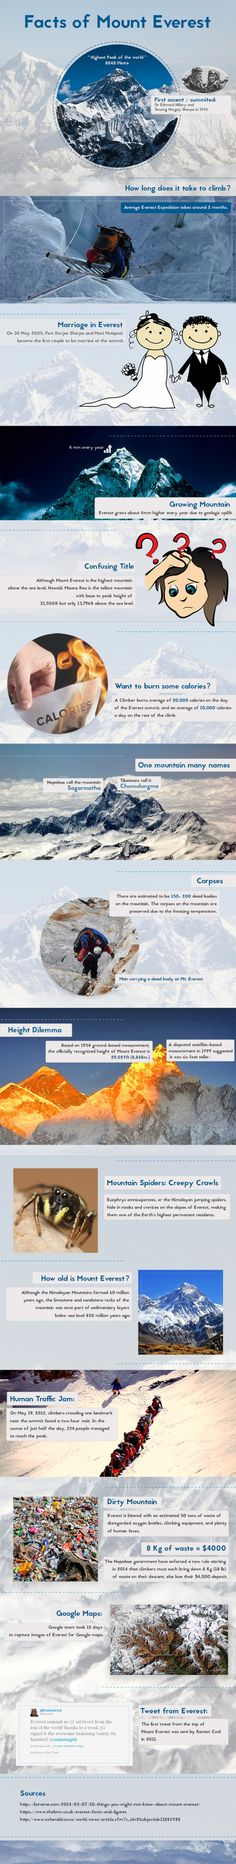 Facts About Mount Everest - Do you fancy an infographic? There are a lot of them online, but if you want your own please visit http://www.linfografico.com/prezzi/ Online girano molte infografiche, se ne vuoi realizzare una tutta tua visita http://www.linfografico.com/prezzi/